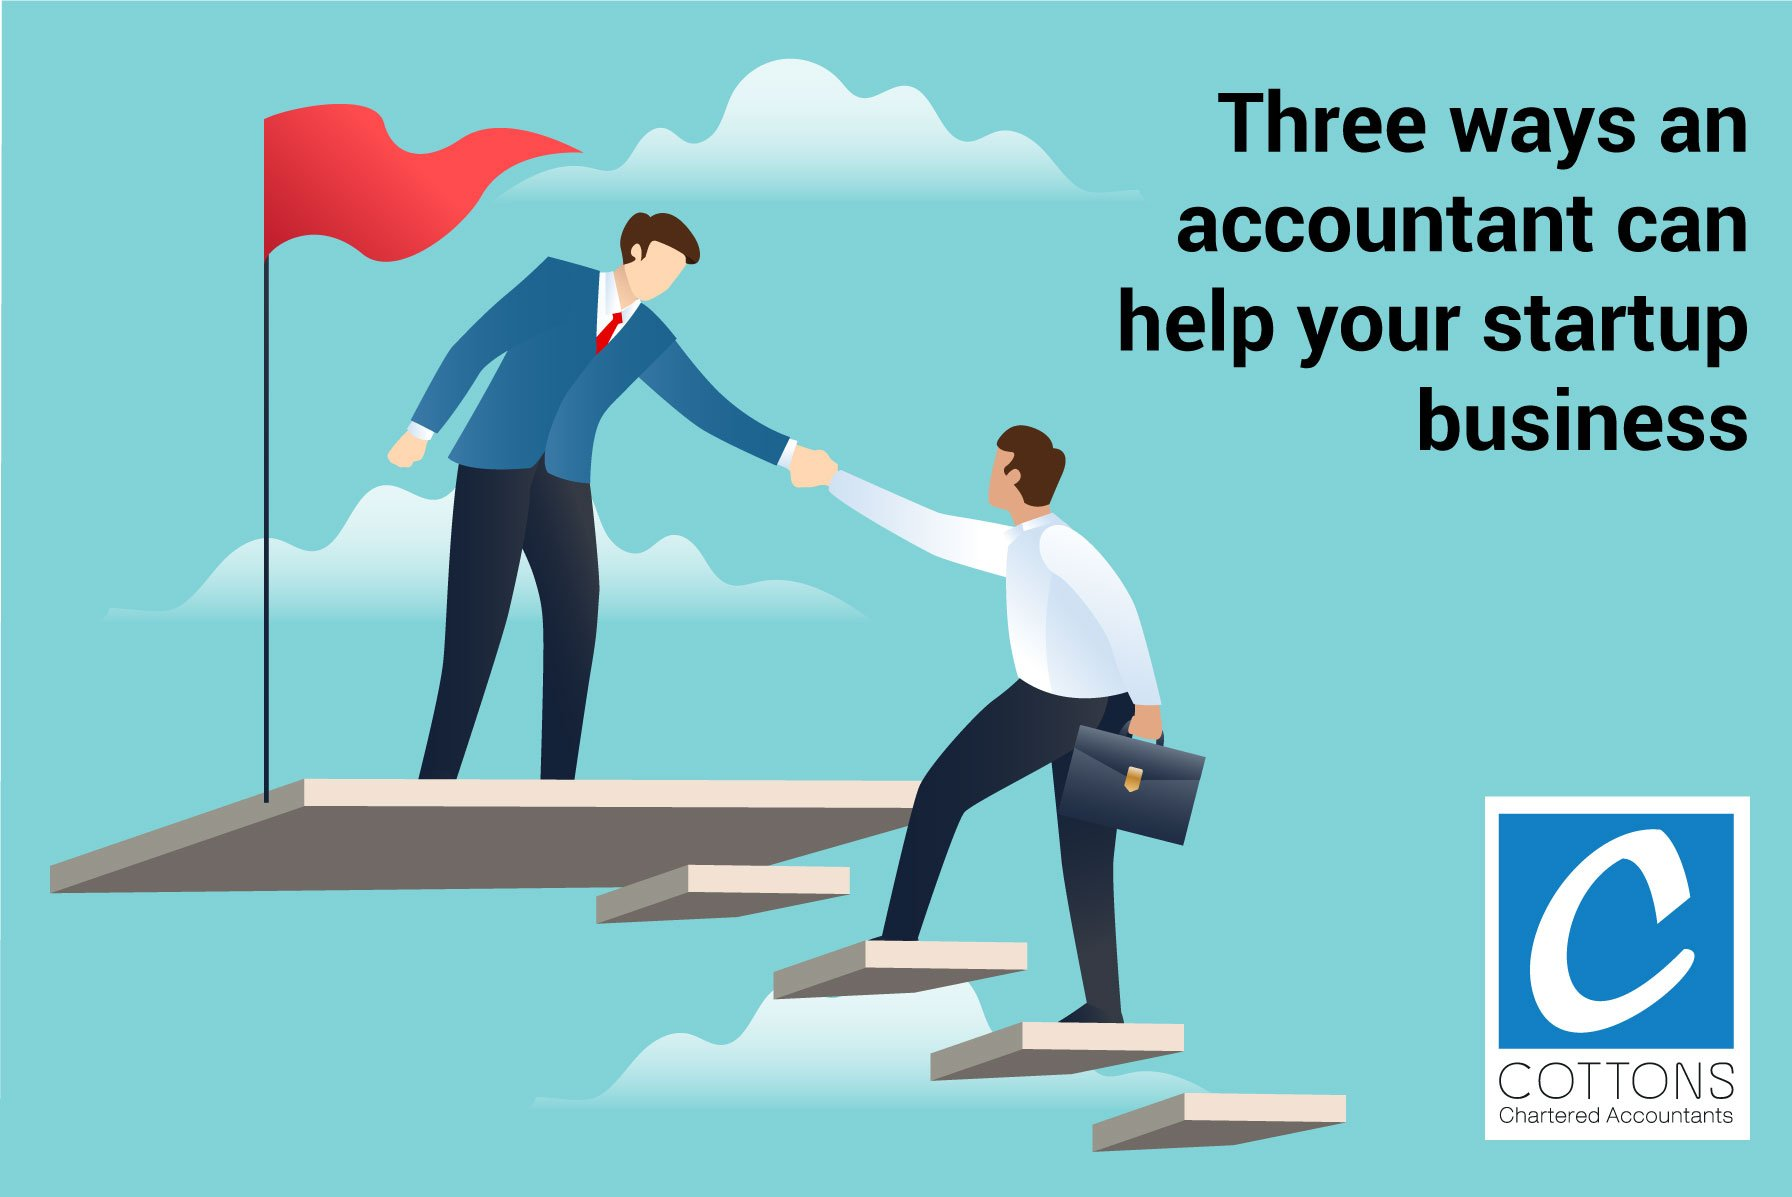 3 ways an accountant can help your startup business